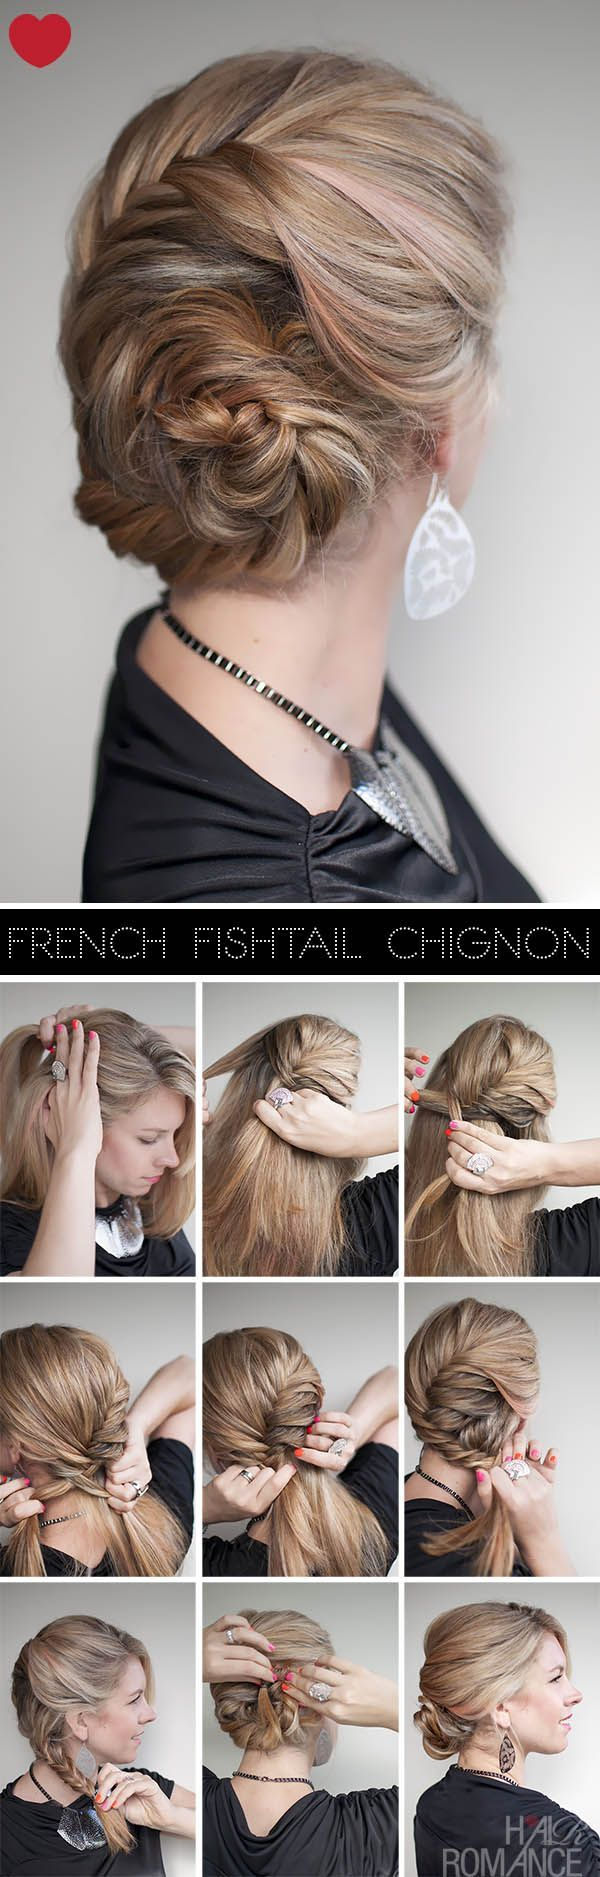 Hair Romance – French fishtail braided chignon hairstyle tutorial  | followpics.co